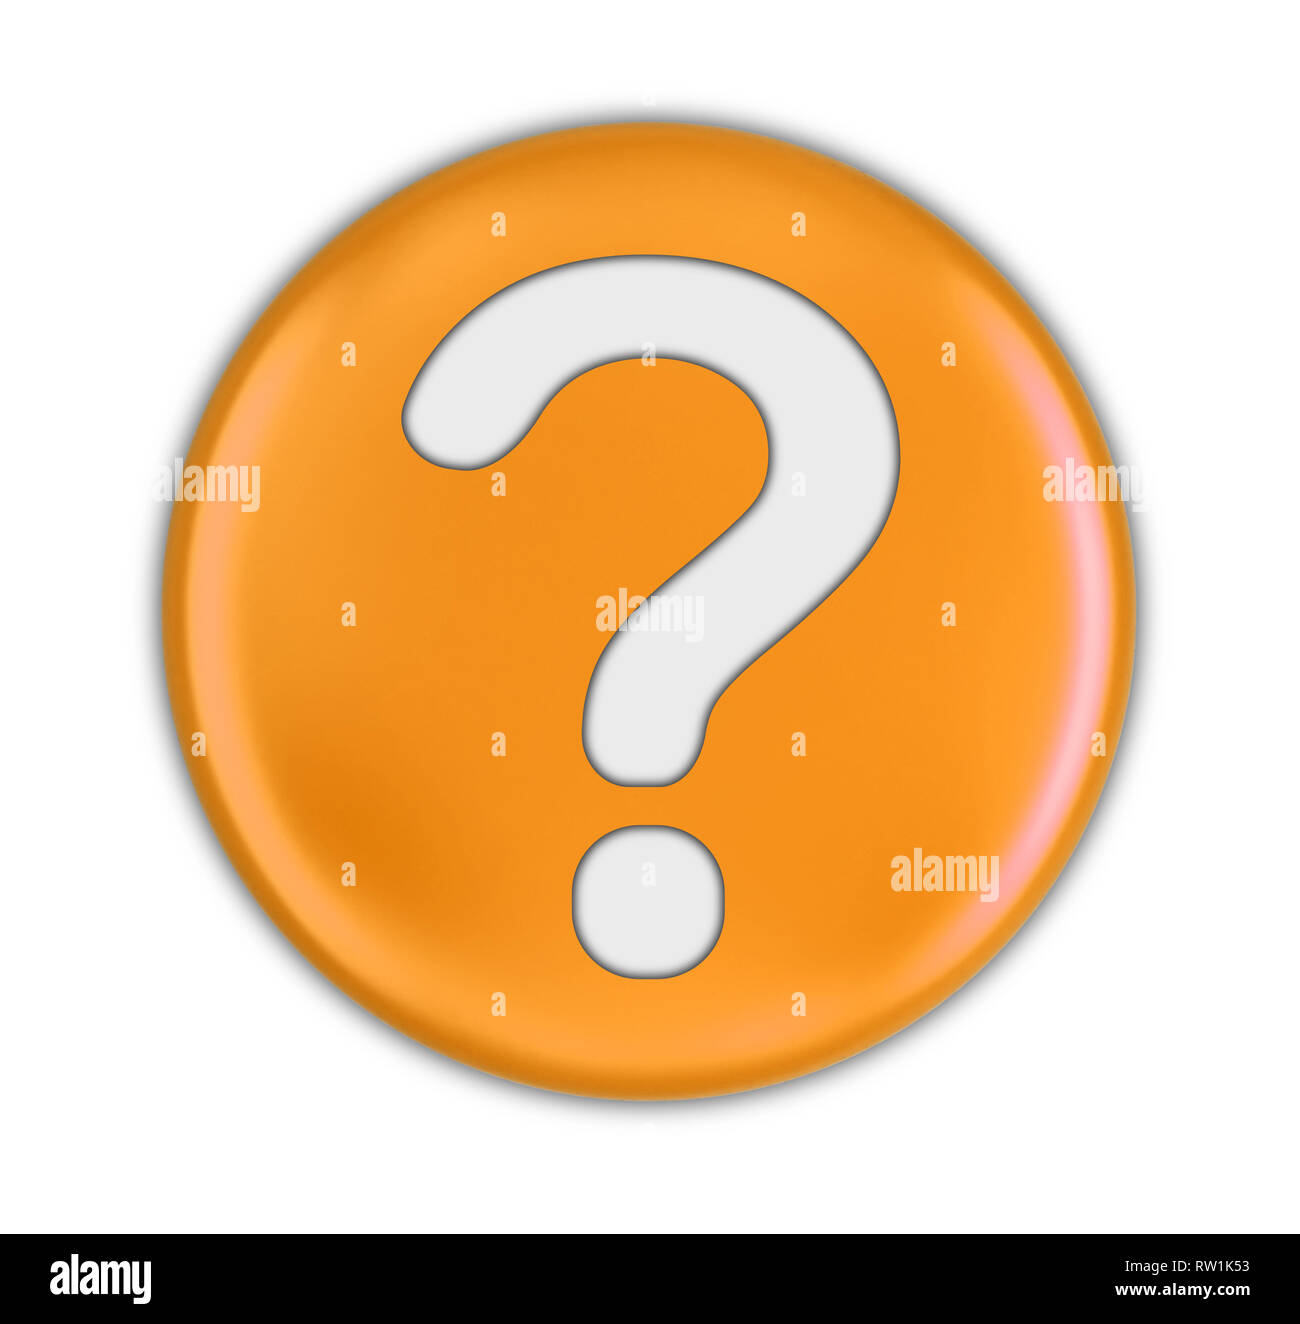 Button with Question Mark. Image with clipping path - Stock Image